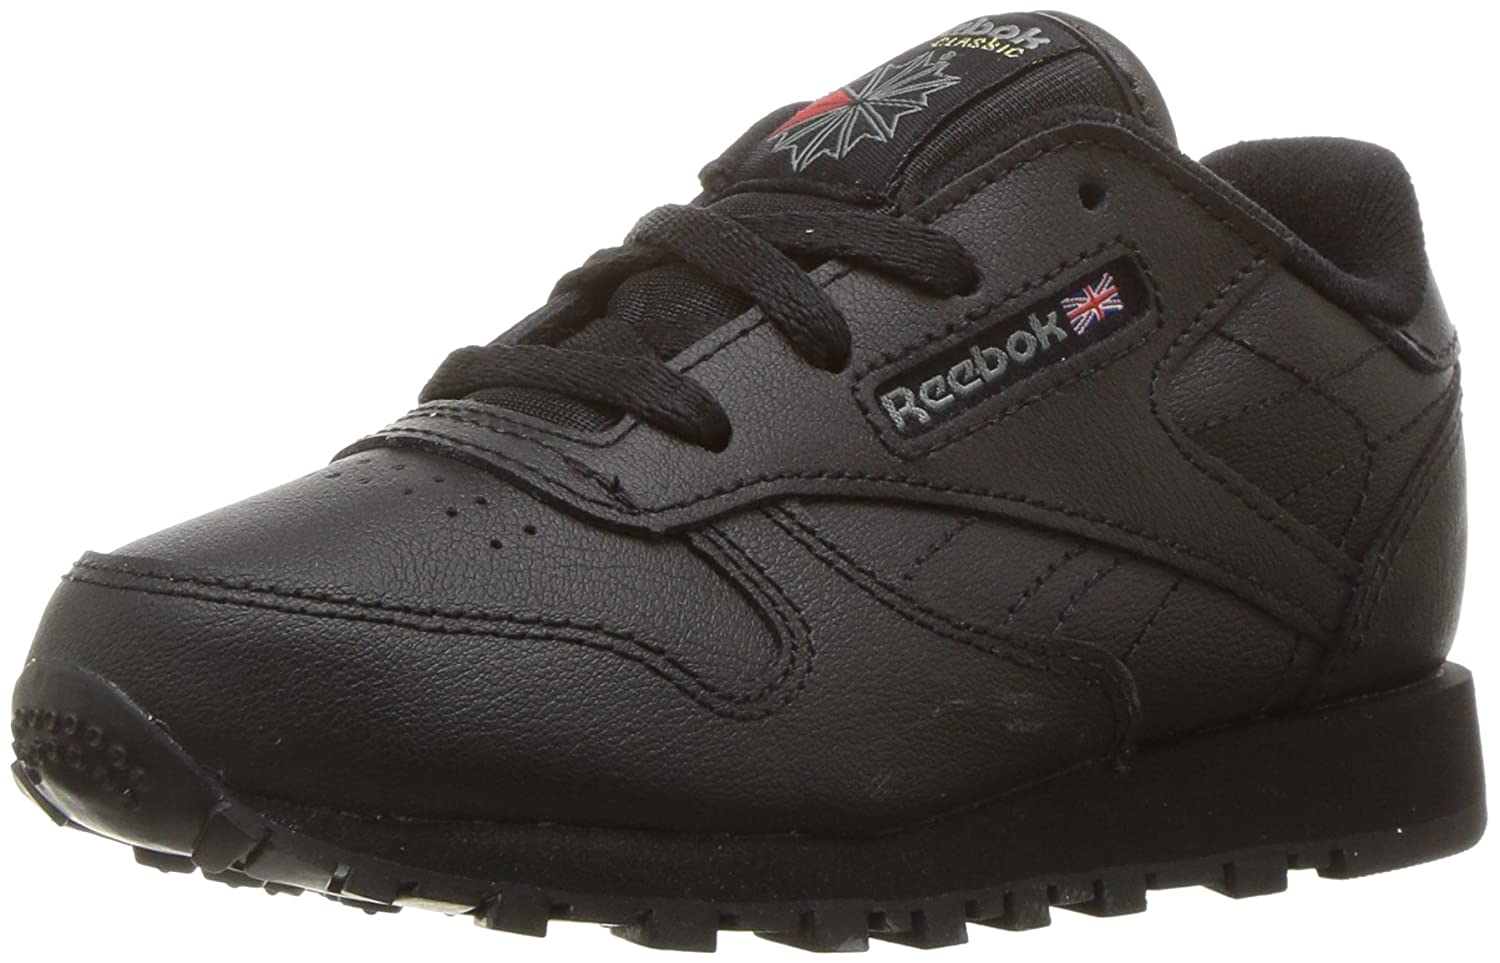 006c2972d93a8a Reebok Infant Toddler Classic Leather Sneaker